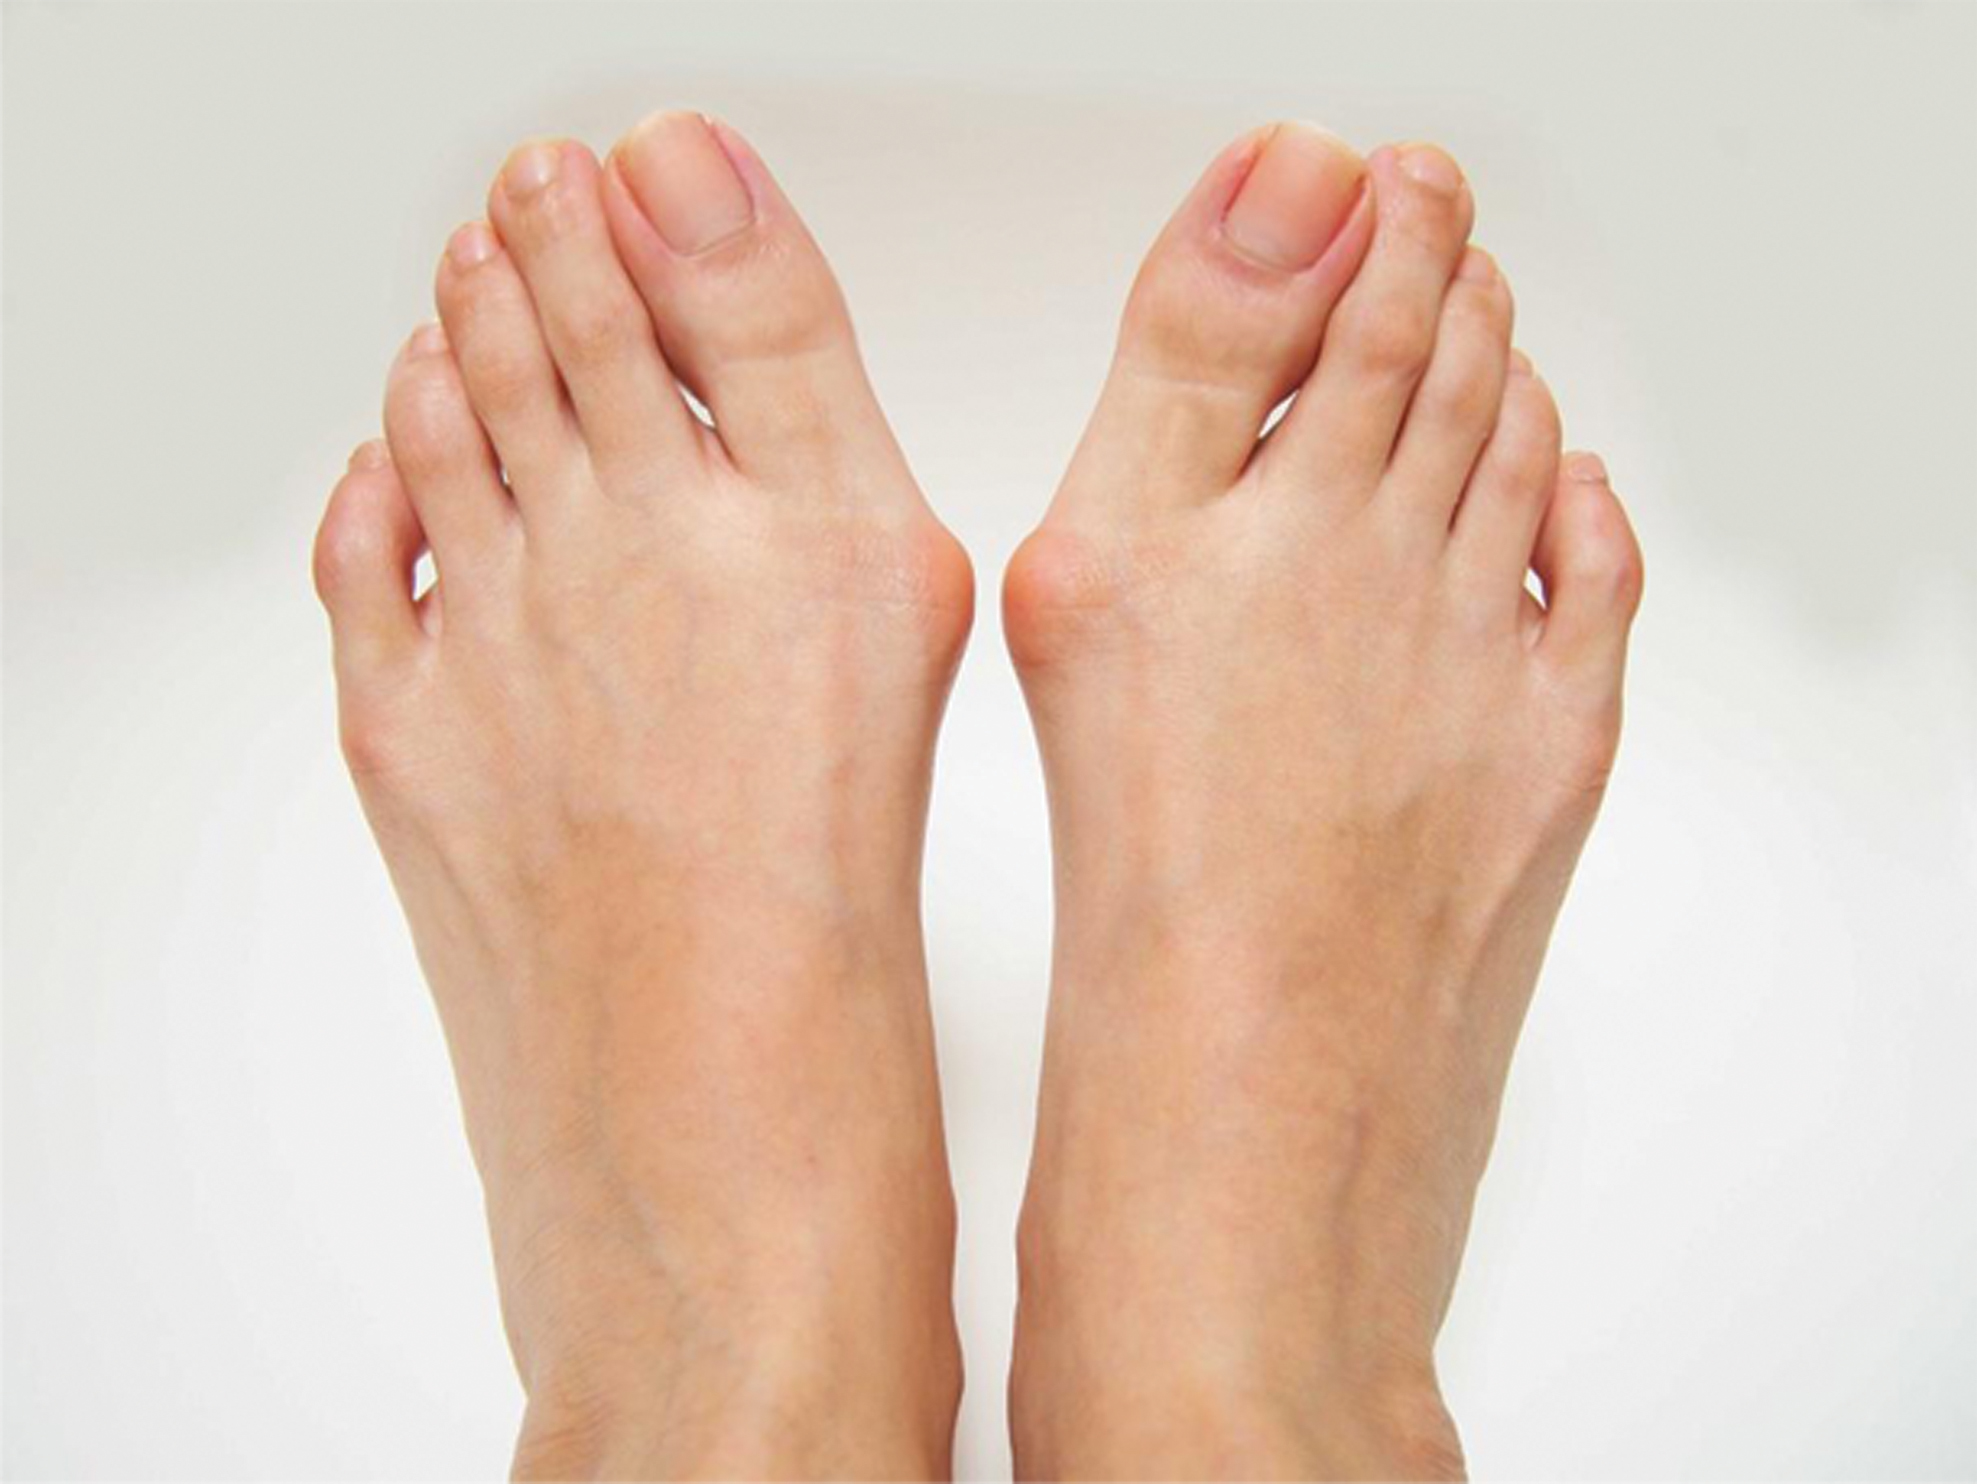 Photo of Don't Ignore Painful, Swollen Bunions: You Have Multiple Options to Treat Your Feet